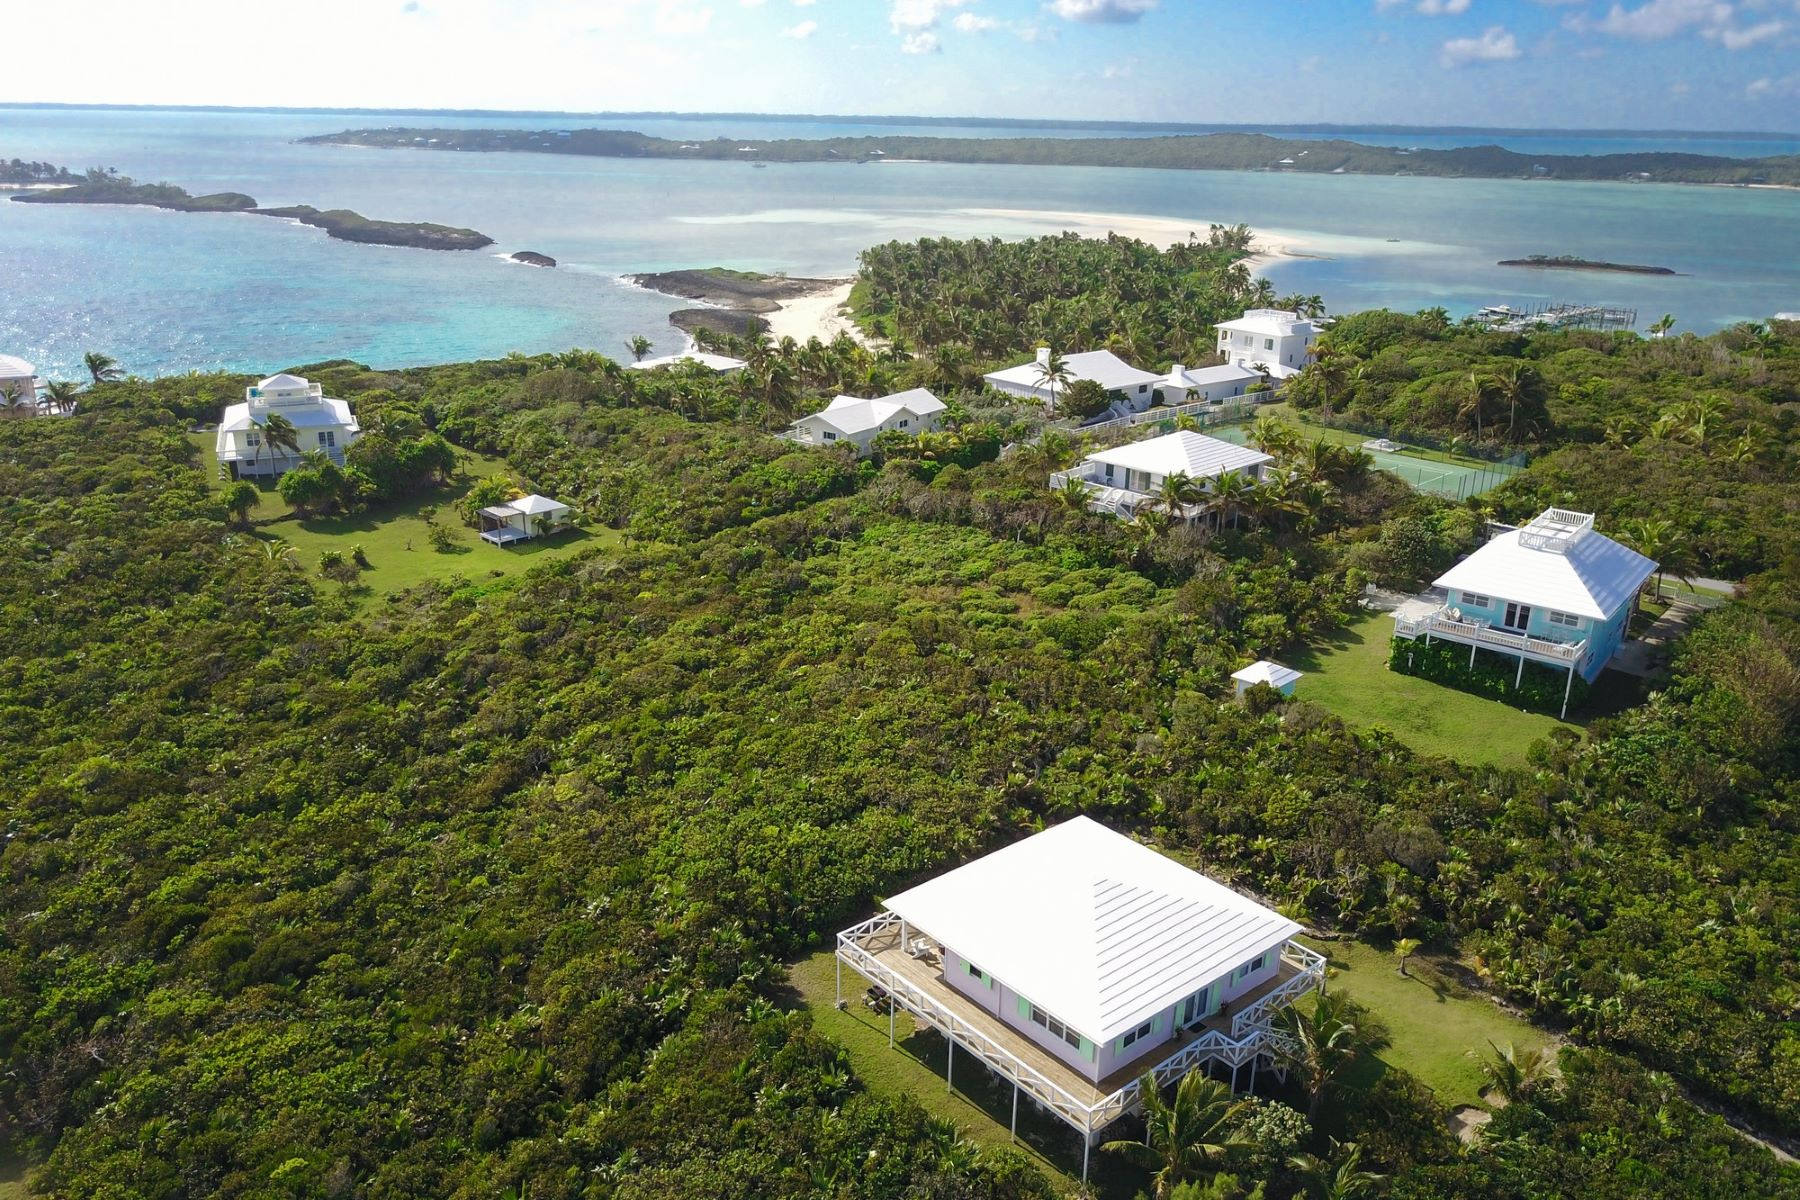 Land for Sale at Jamie's Lot 42 Elbow Cay Hope Town, Abaco Bahamas